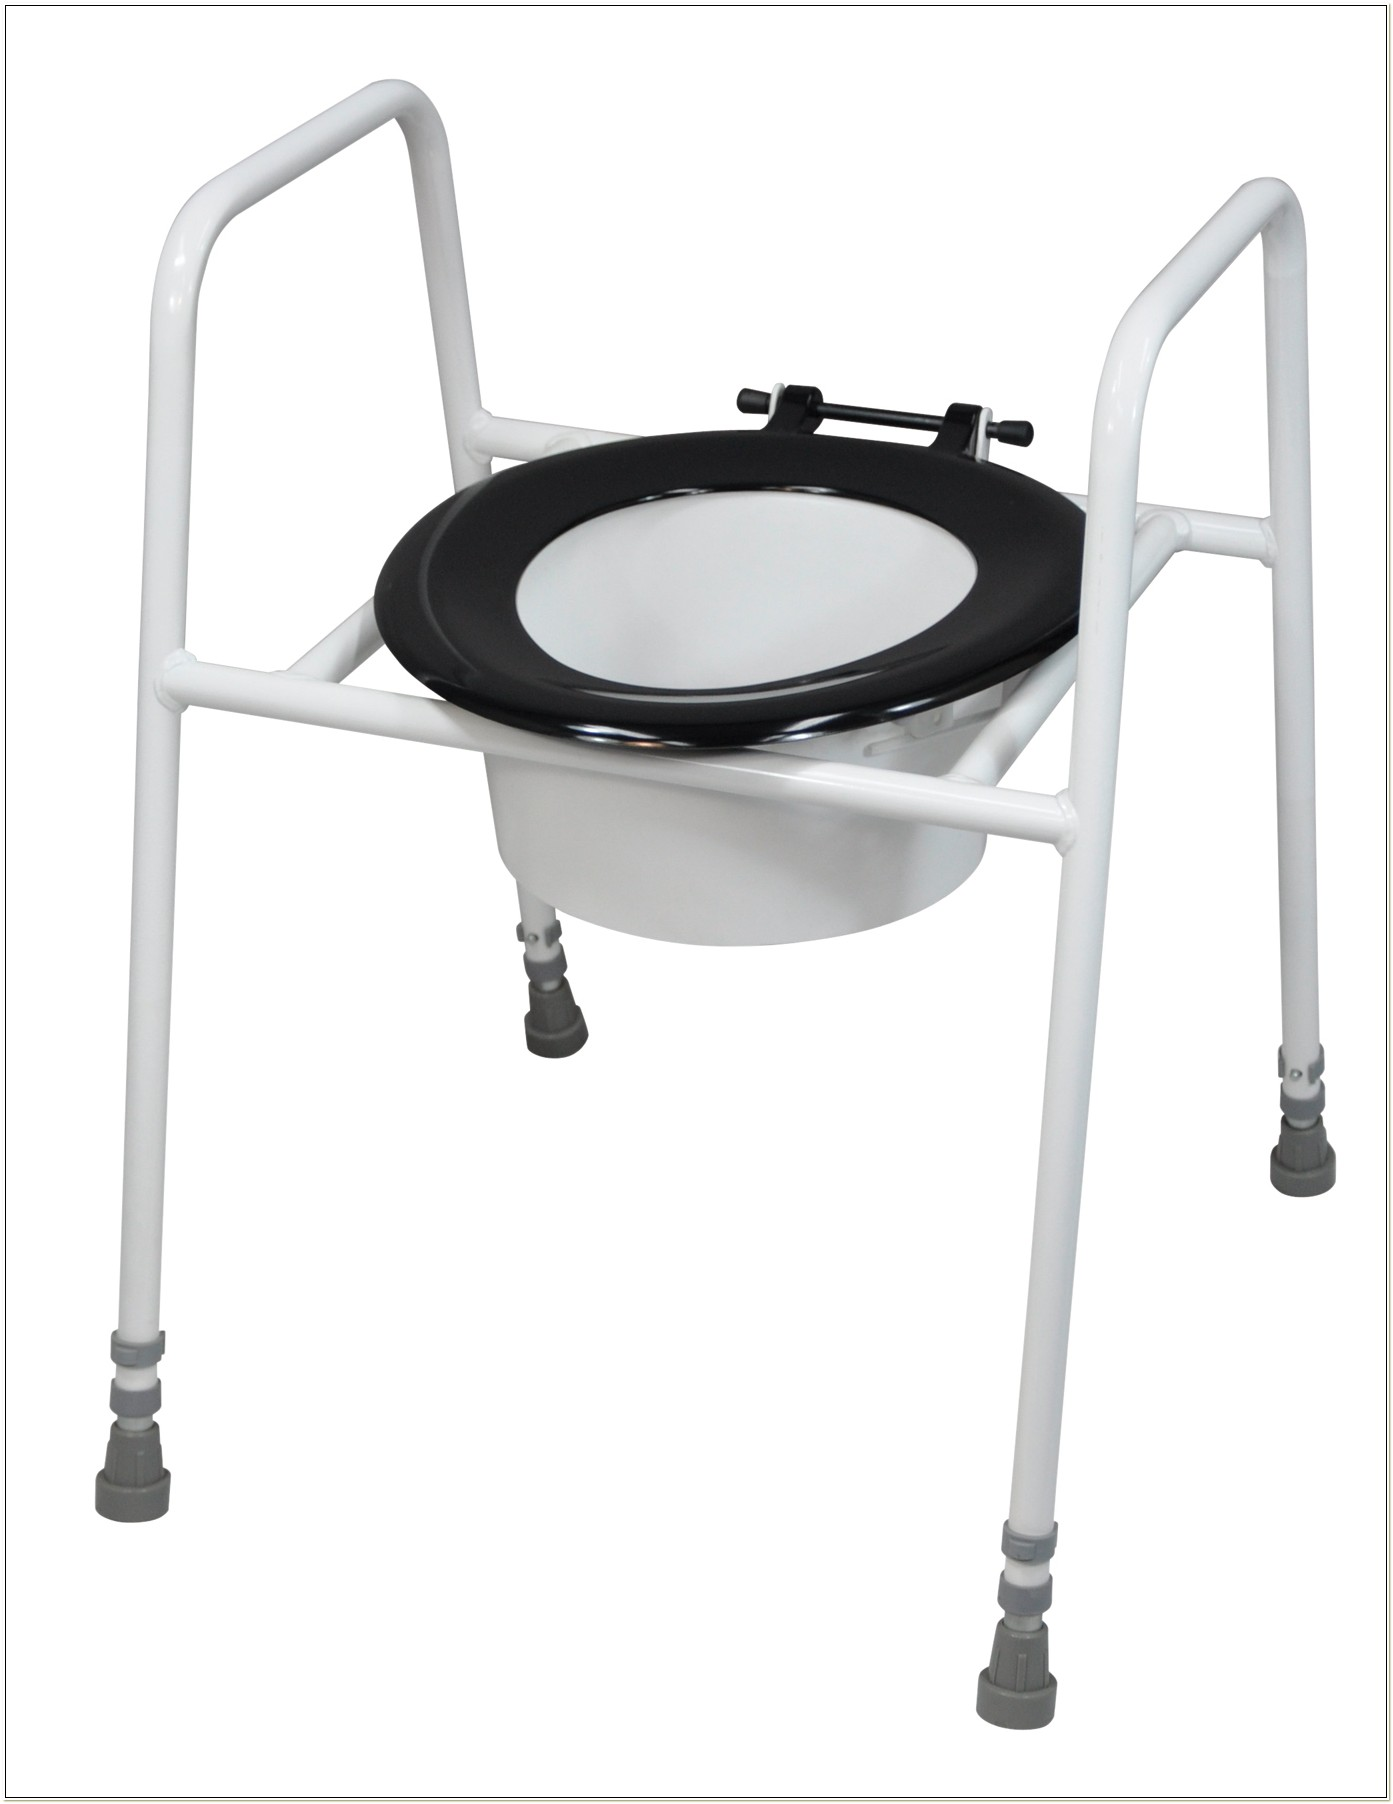 Portable Toilet Seats For Disabled